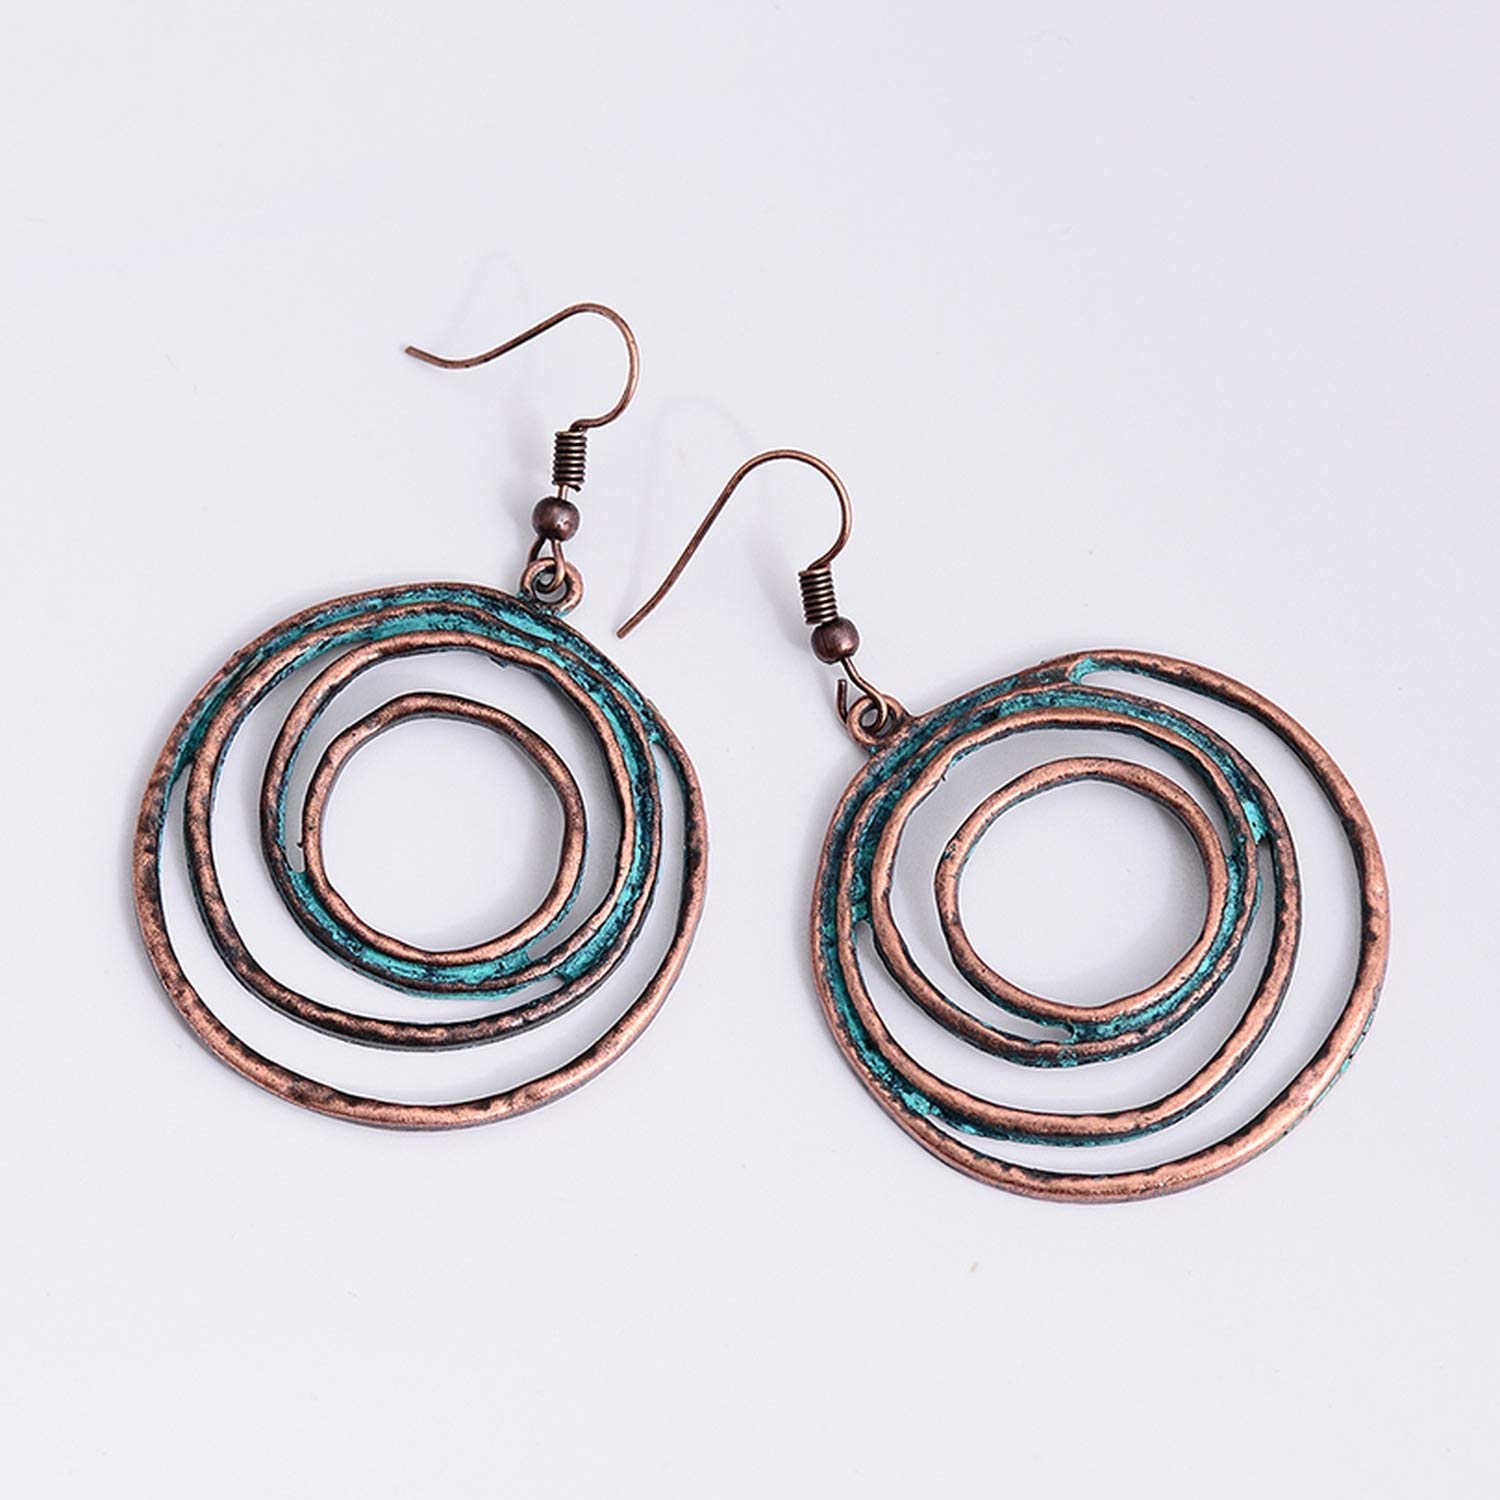 DLNCTD Novel This is an Upgrade Earrings,Charm Pendant Punk Style Copper Drop Earrings Creative Girls Jewelry,AN001161